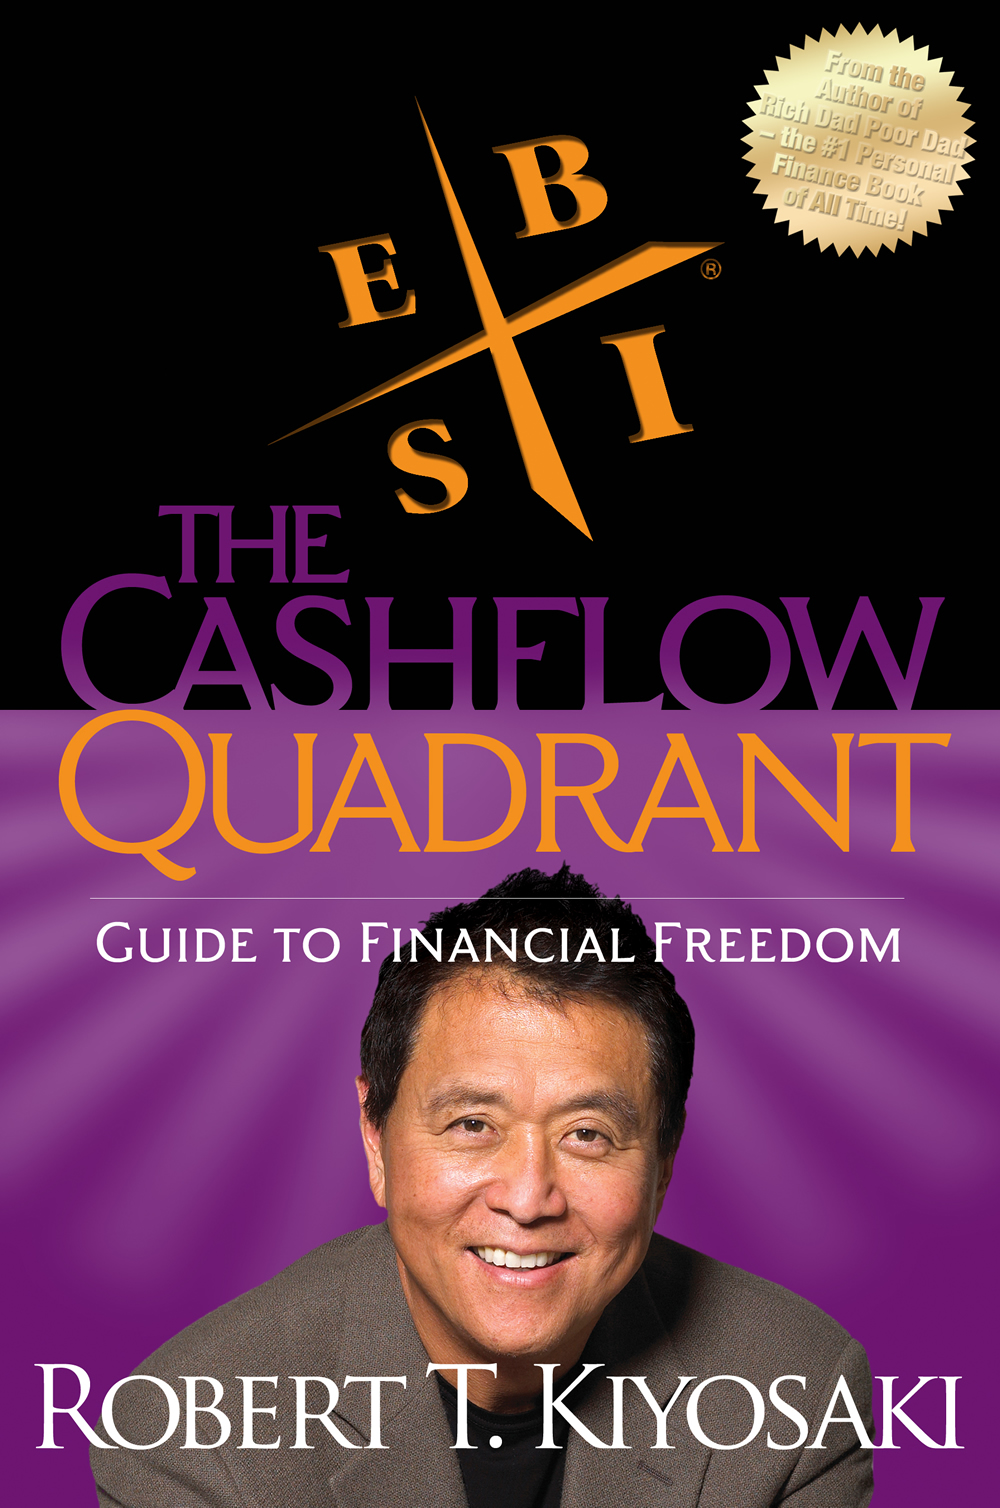 Cashflow ebook dads rich download quadrant free